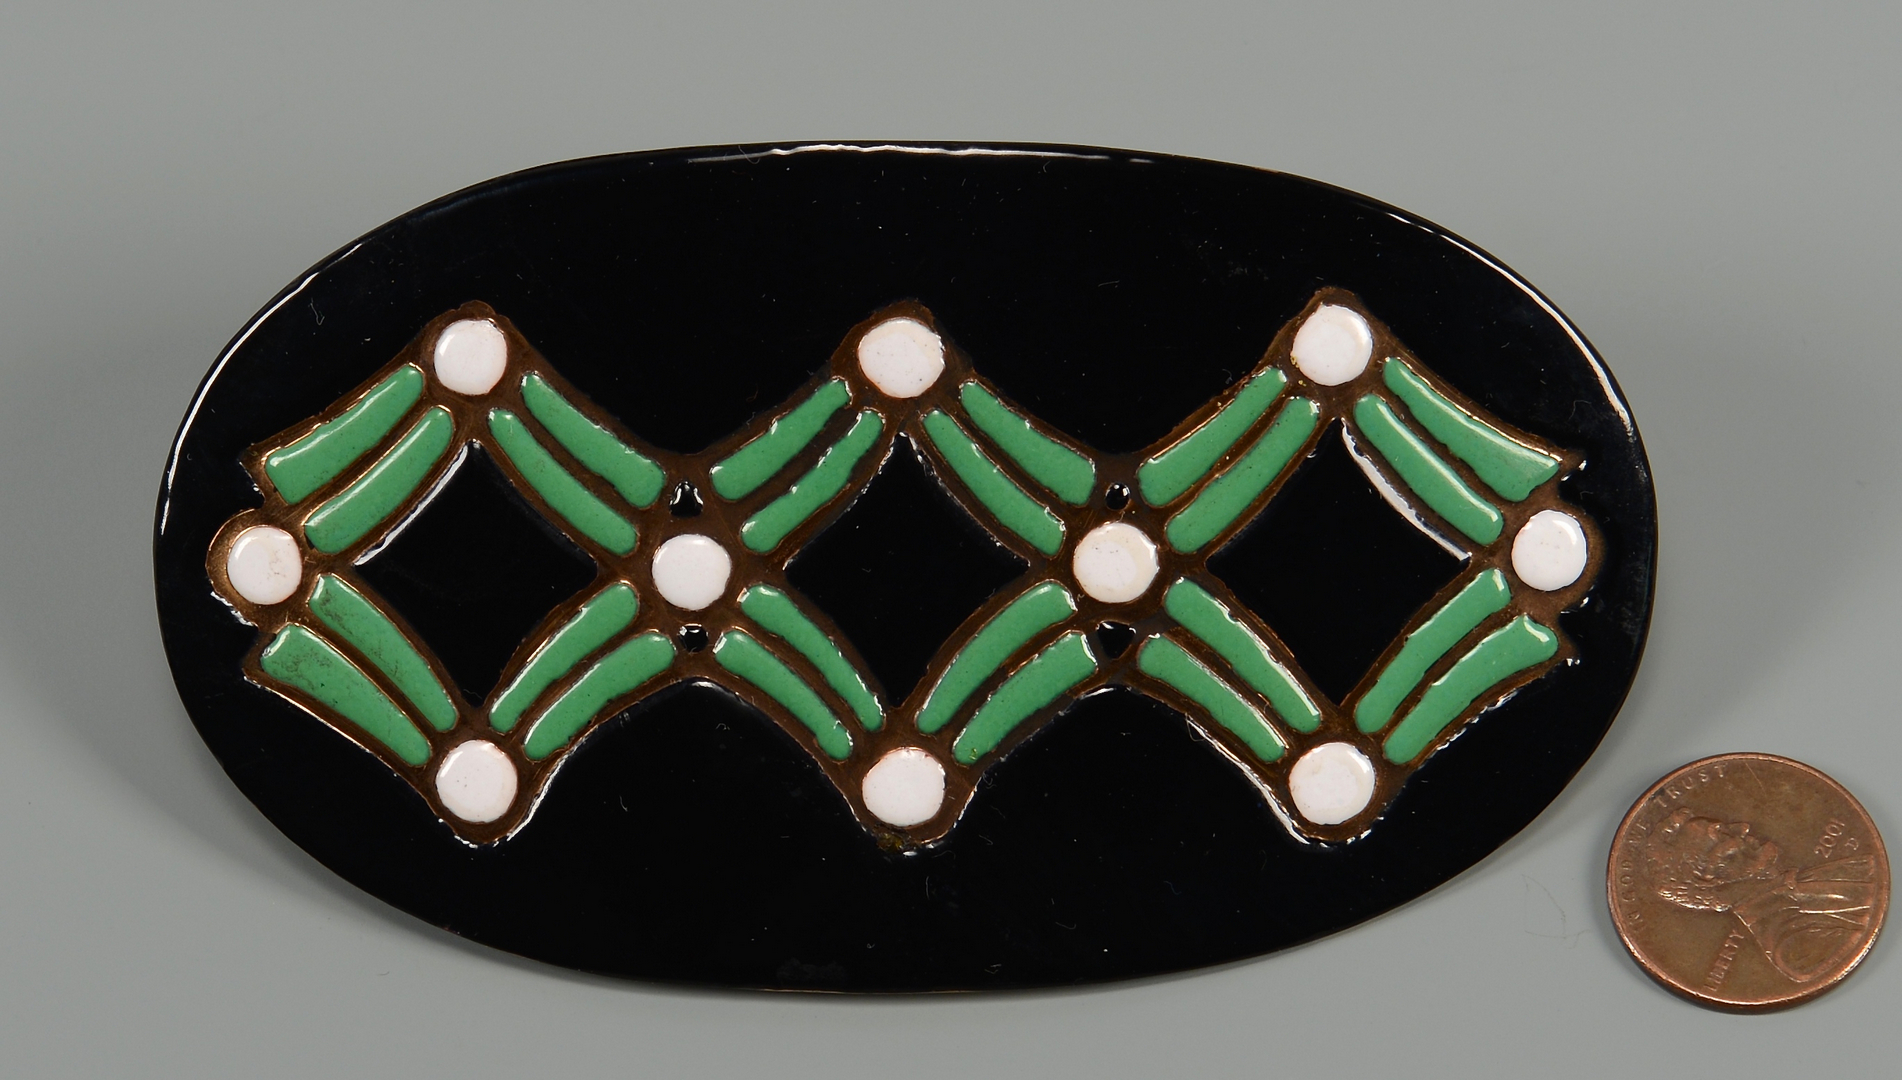 Lot 601: Margot de Taxco Belt Buckle